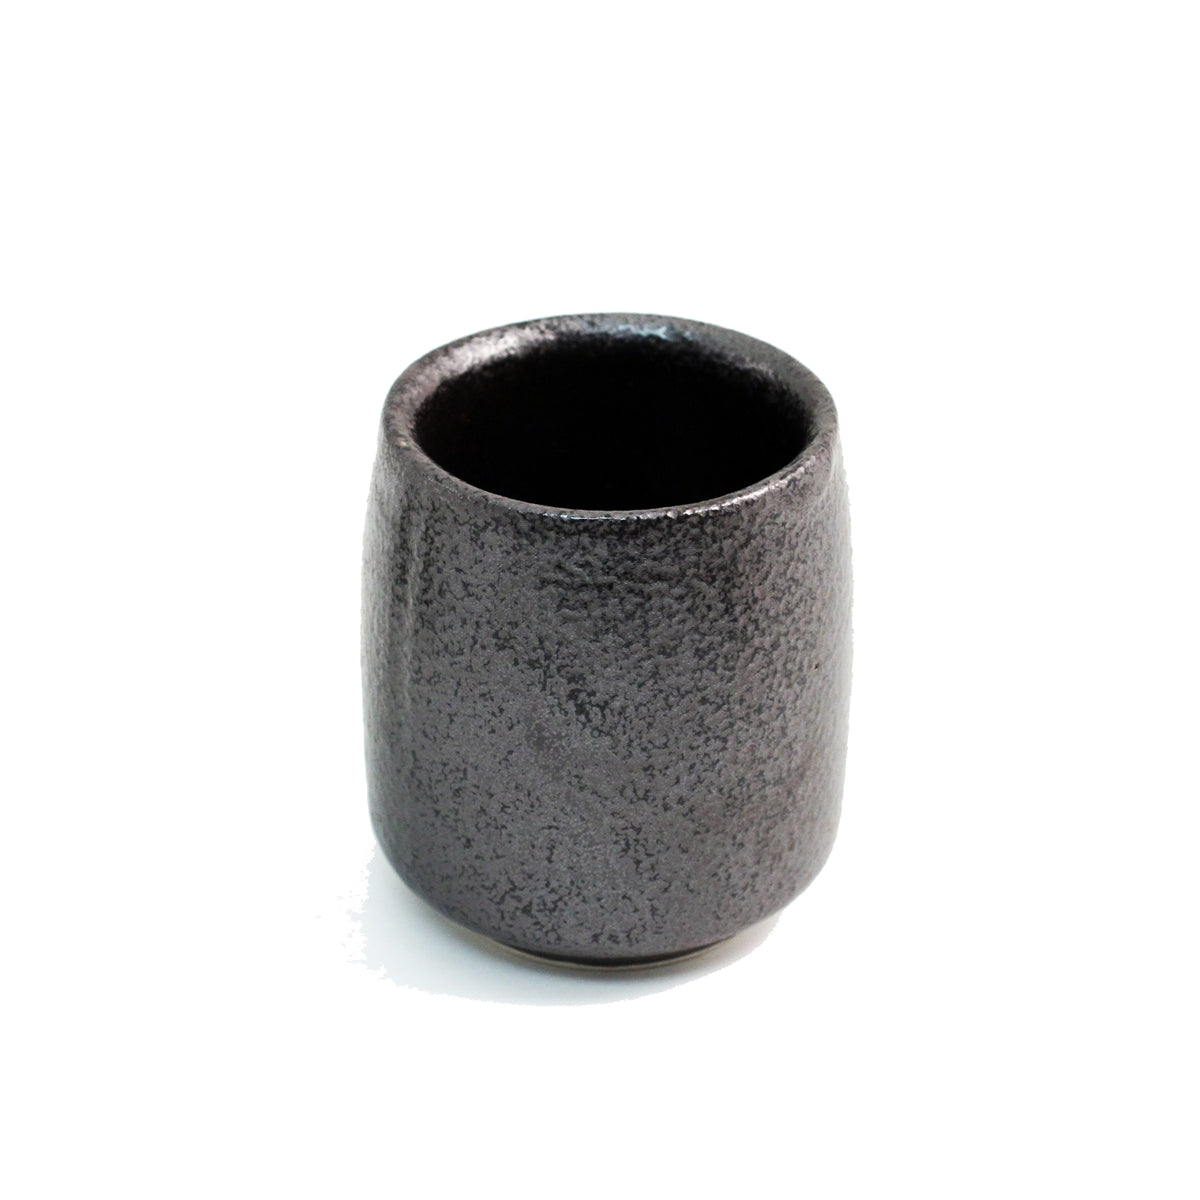 "Matte Black Tea Cup 7 fl oz / 2.83"" dia"